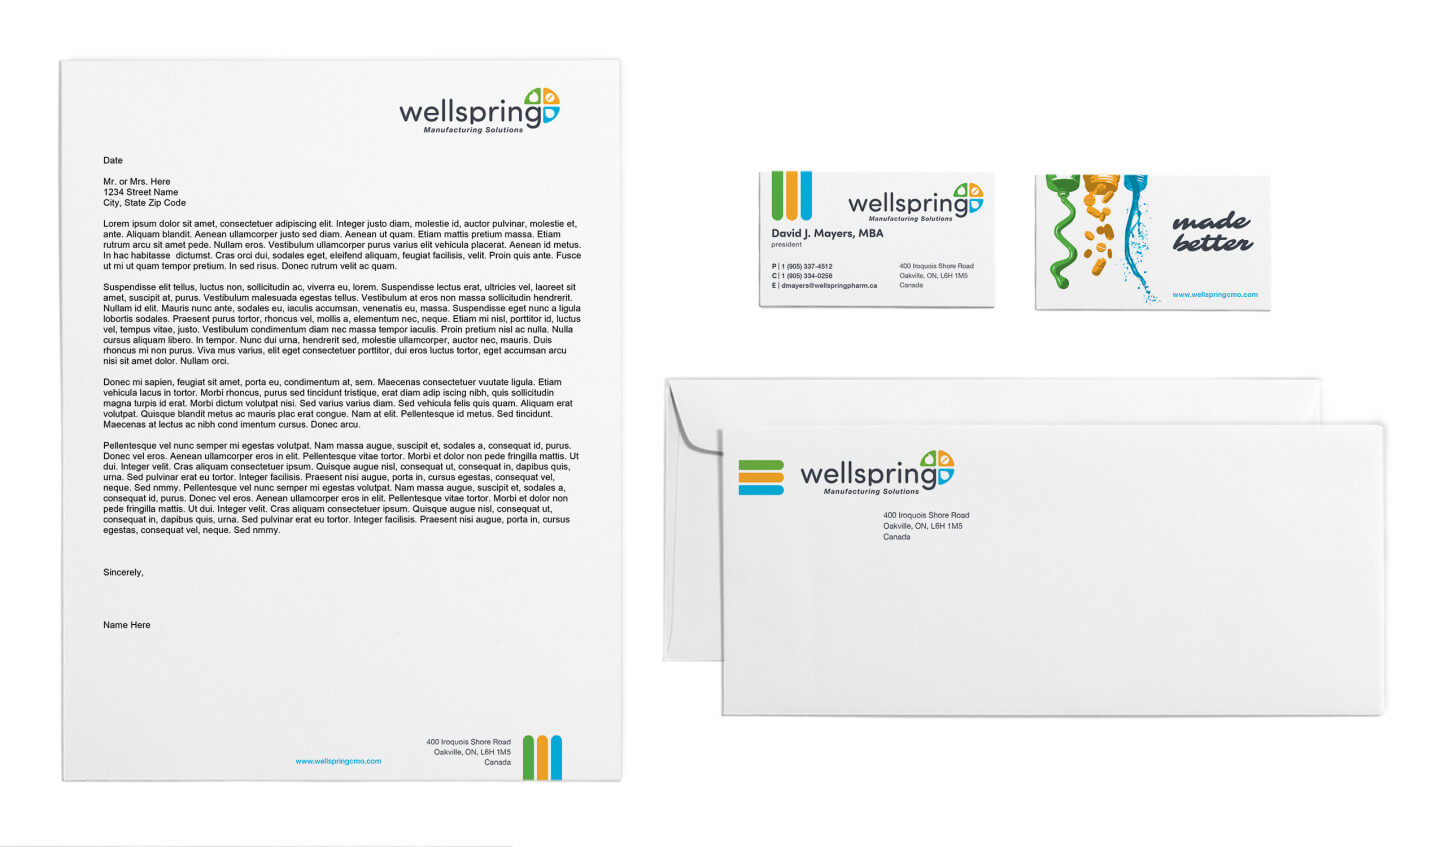 Wellspring Business System